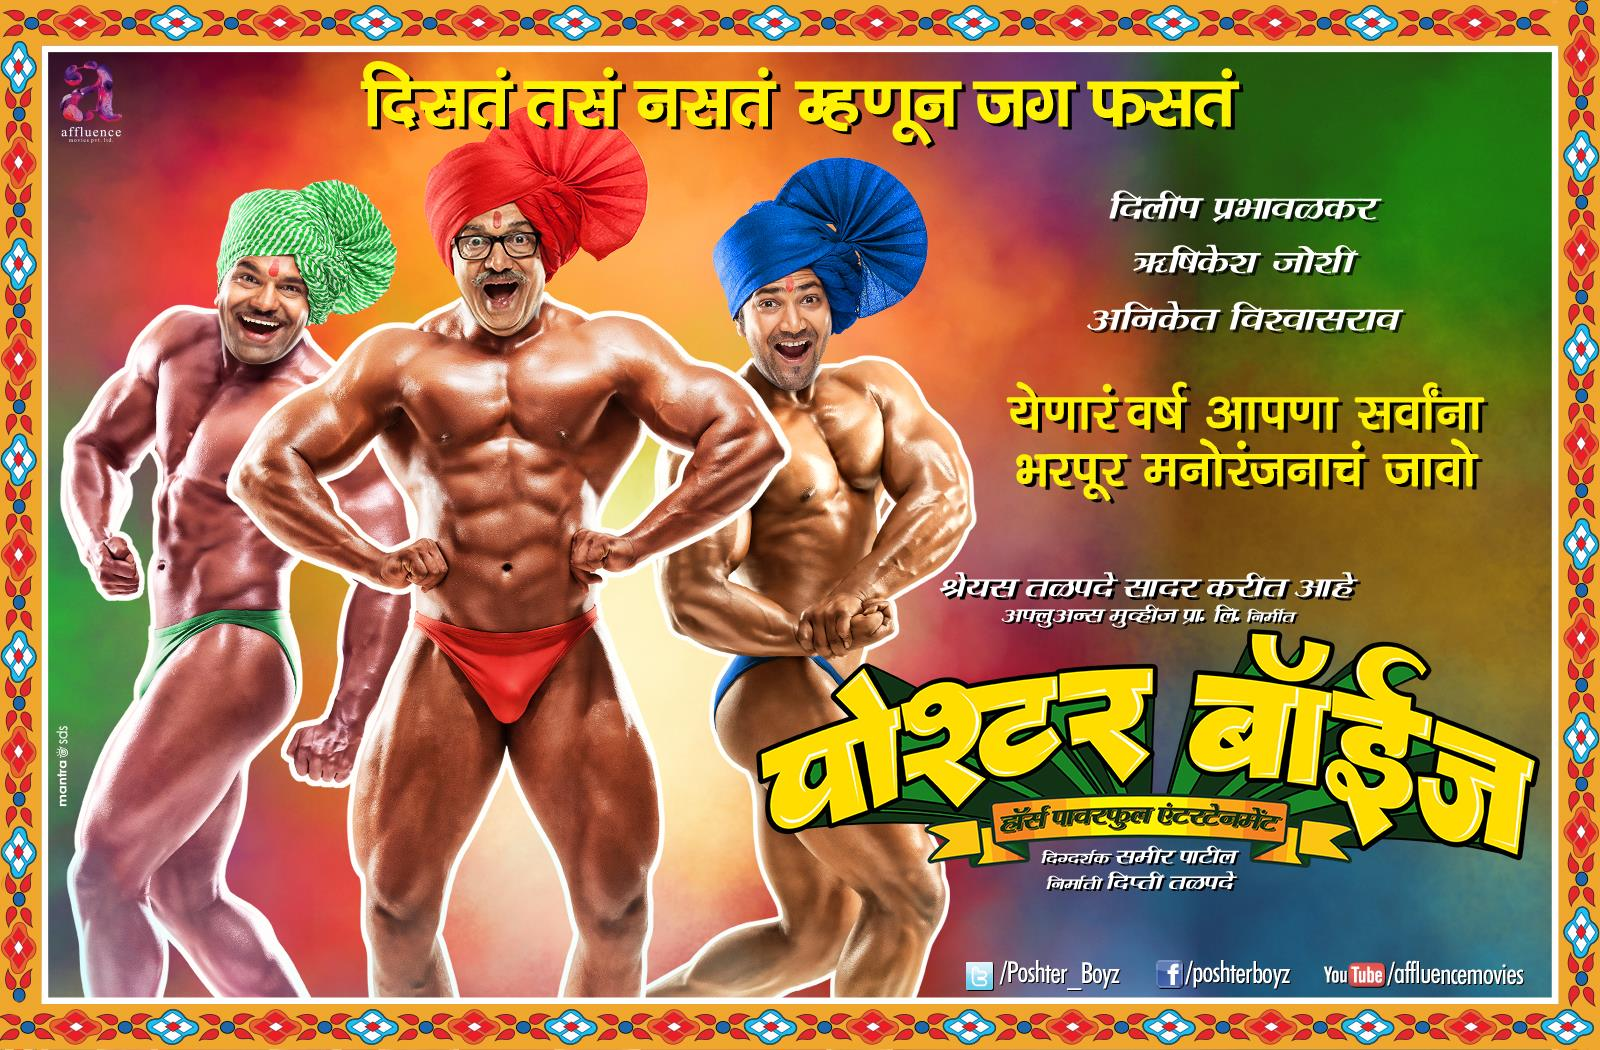 Poshter Boyz (2014) Watch Online Free Marathi Movie